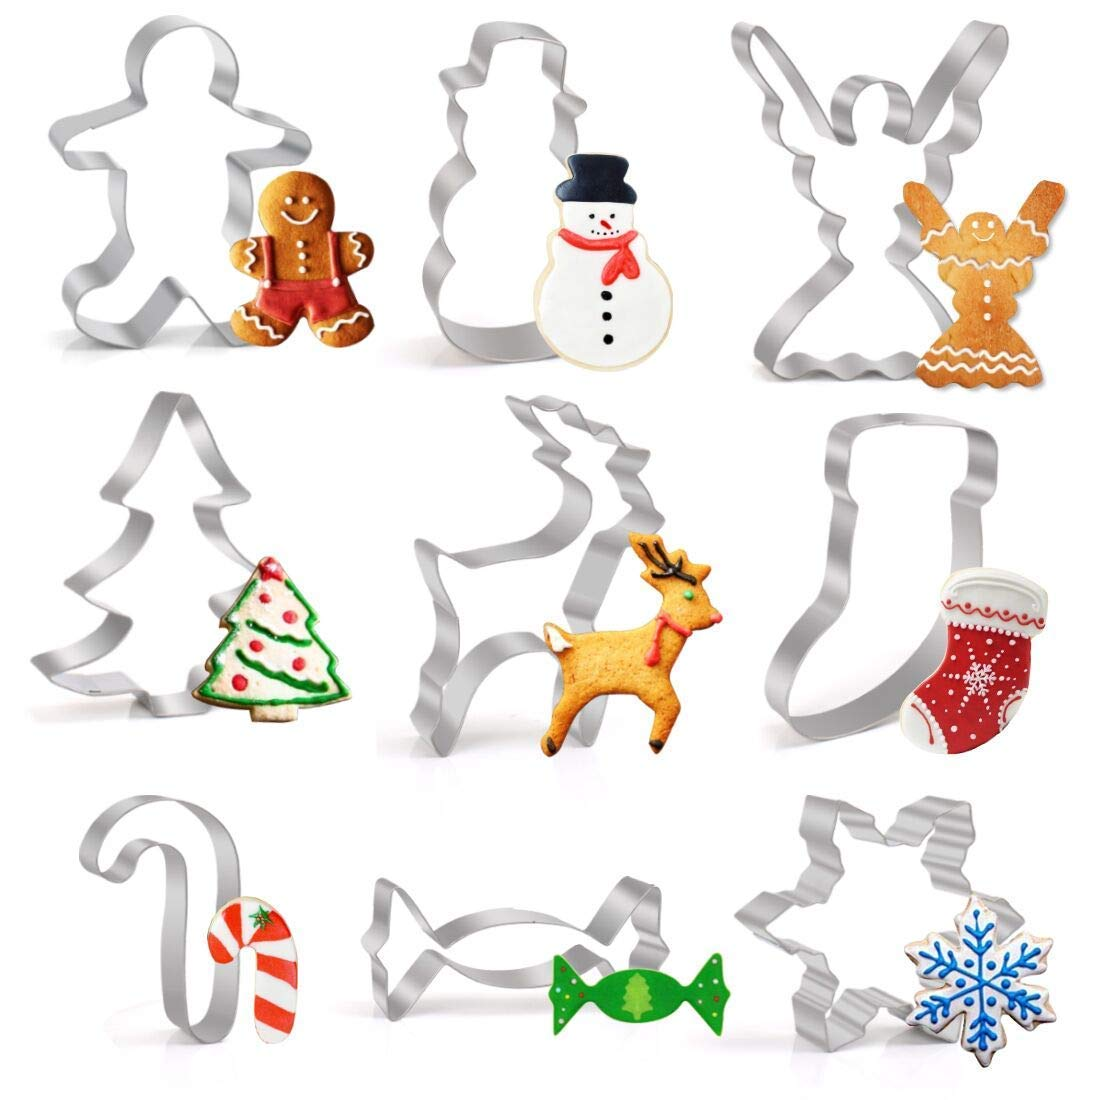 Winter Christmas Cookie Cutter Set- LEEFE Gingerbread Men, Snowman, Snowflake,Candy Cane, Christmas Tree, Angel, Reindeer, Candy - Stainless Steel